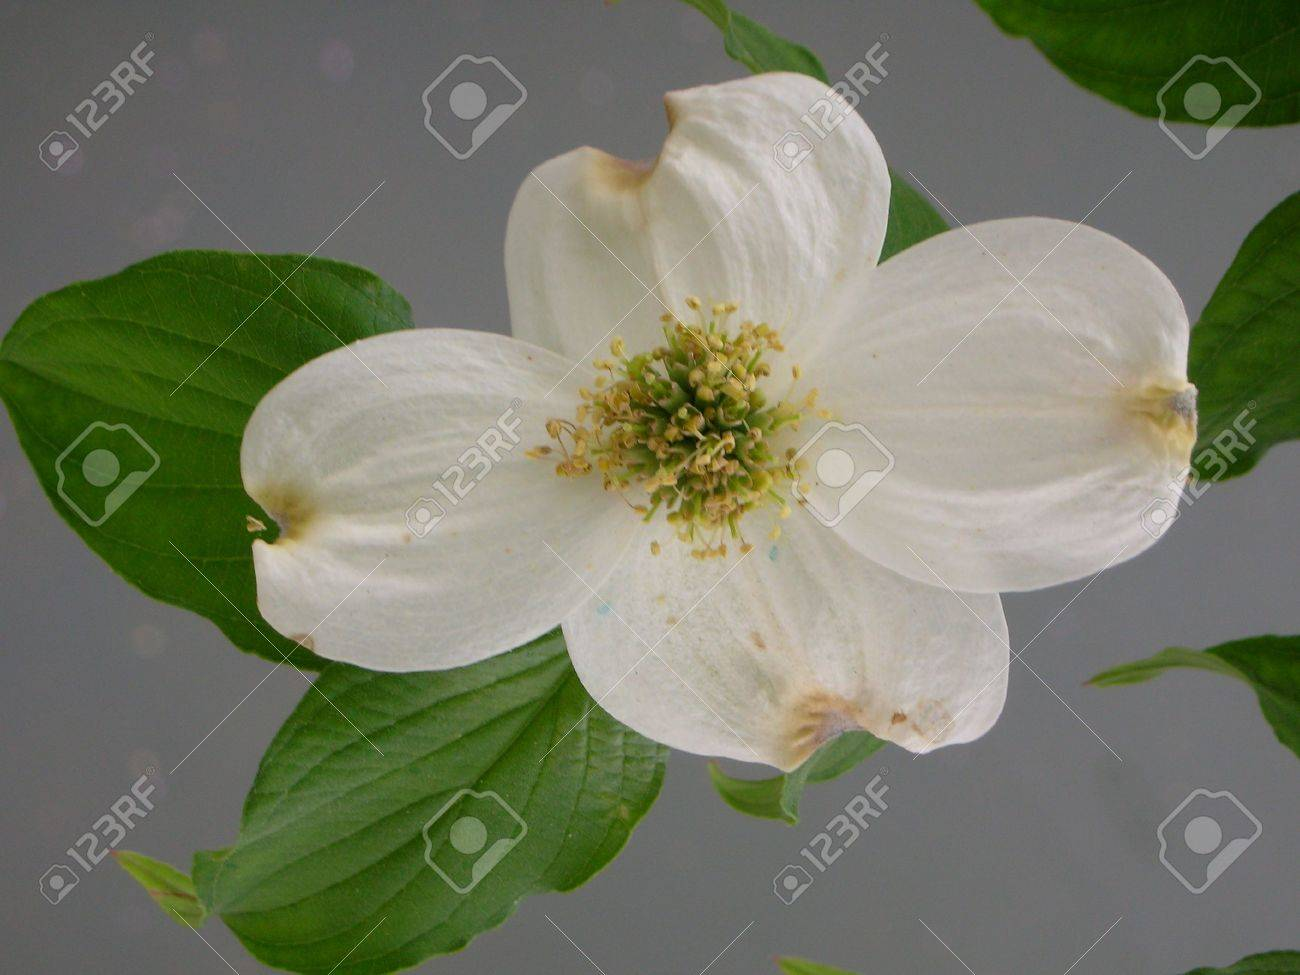 White Dogwood Flower And Leaves Stock Photo Picture And Royalty